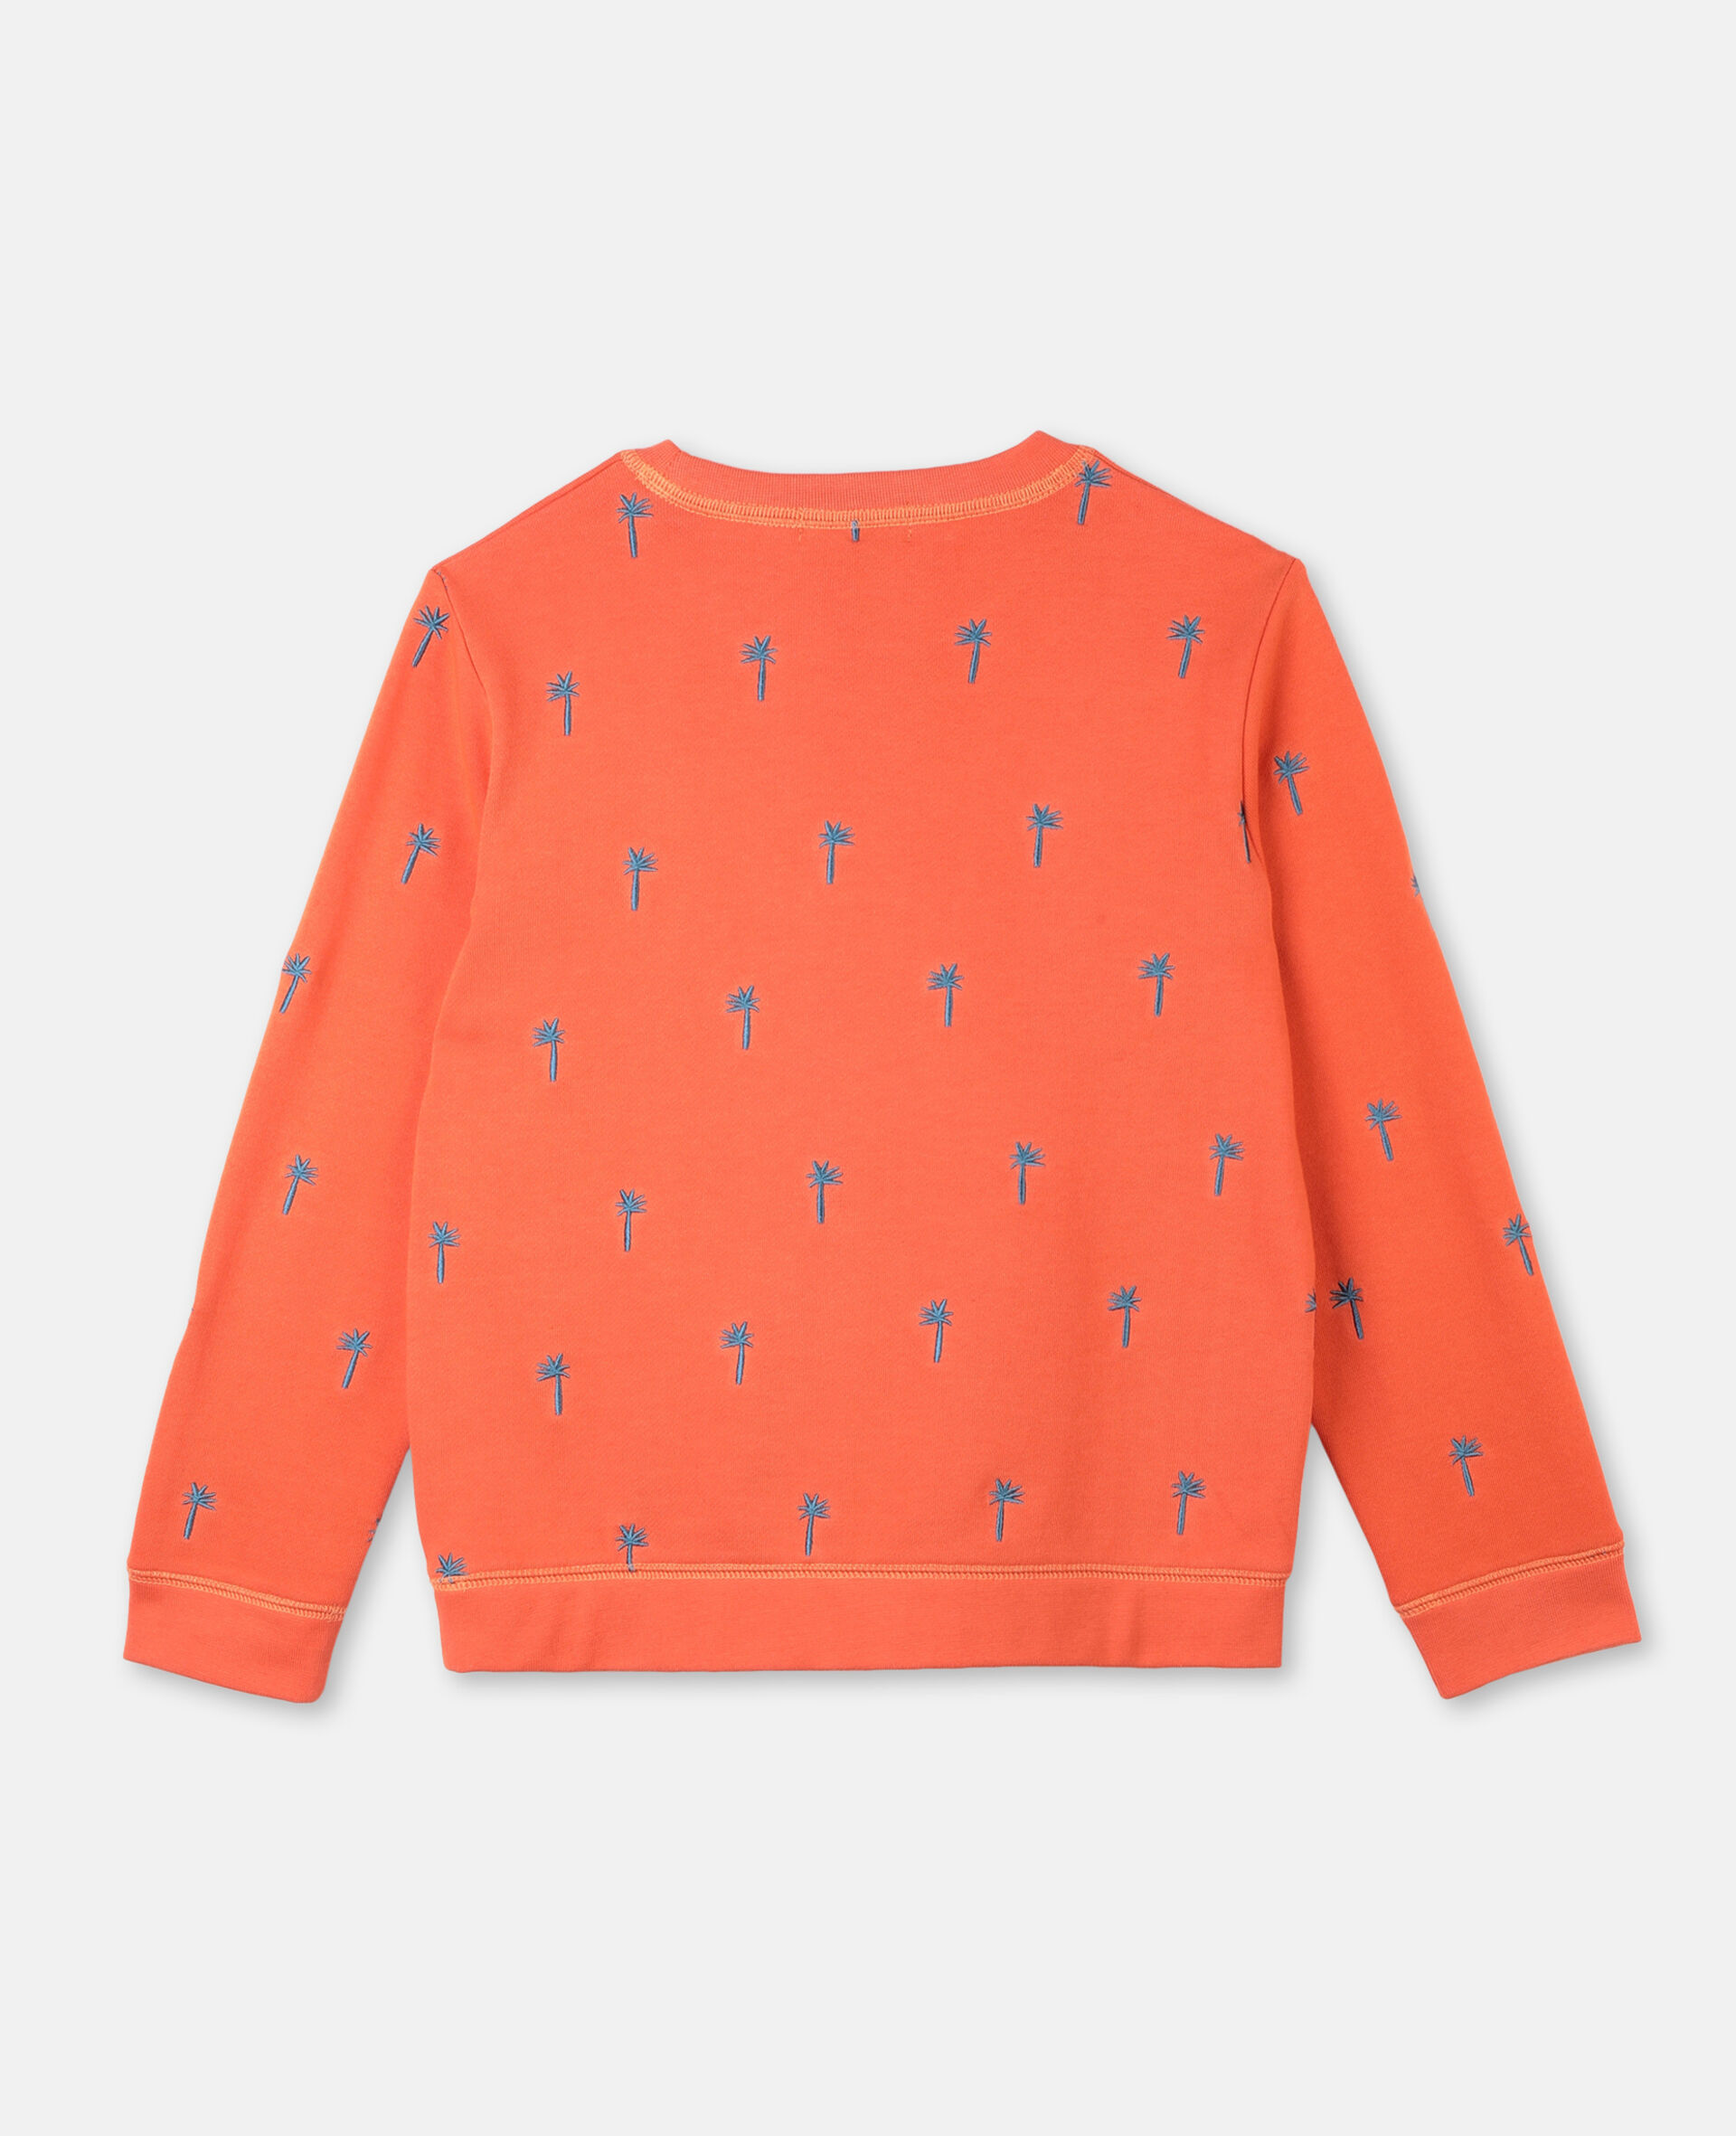 Embroidered Palm Cotton Sweatshirt -Red-large image number 3